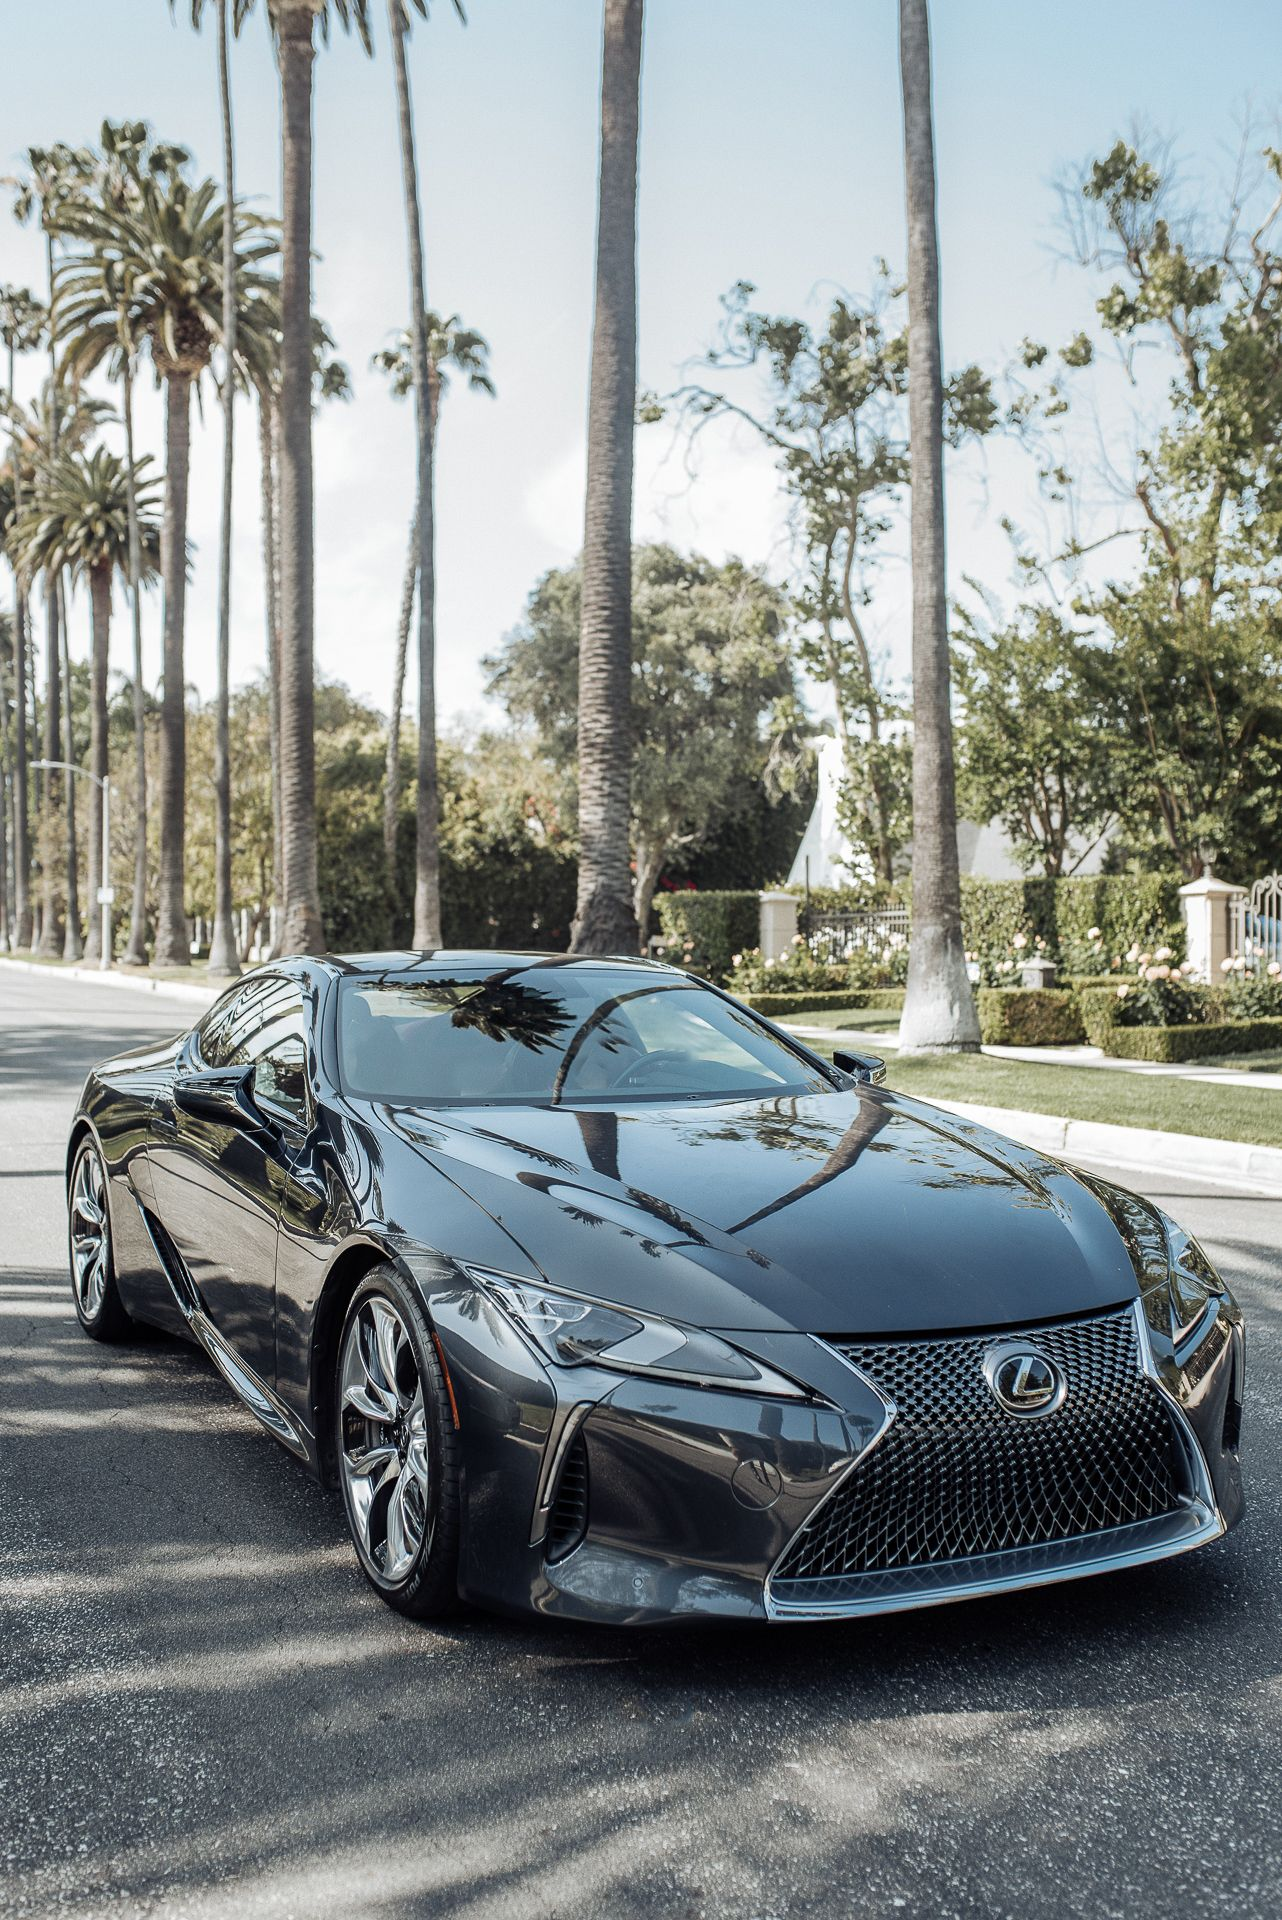 Cruising La In Lexus Heyitsyash Best Luxury Cars Super Luxury Cars Dream Cars